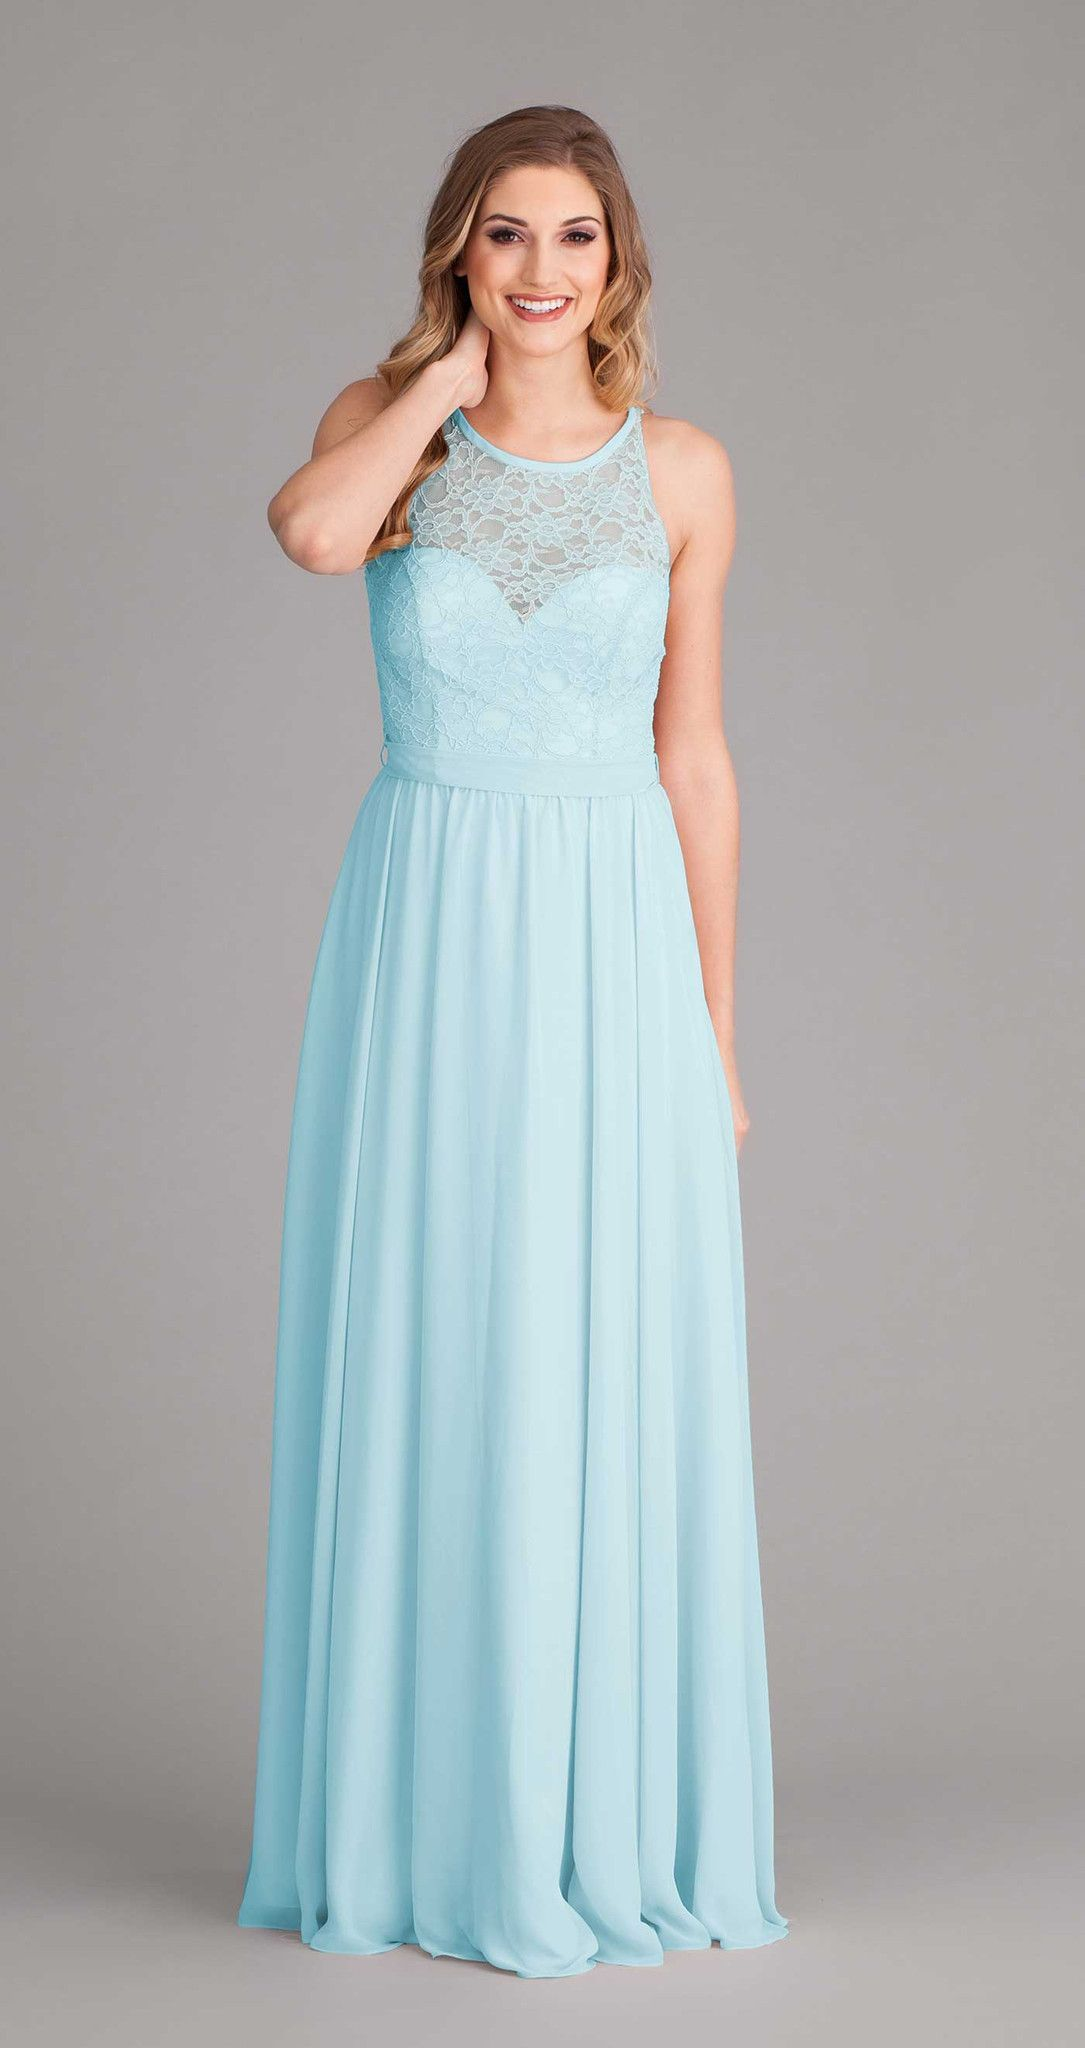 Delilah illusion neckline long bridesmaid dresses and lace top